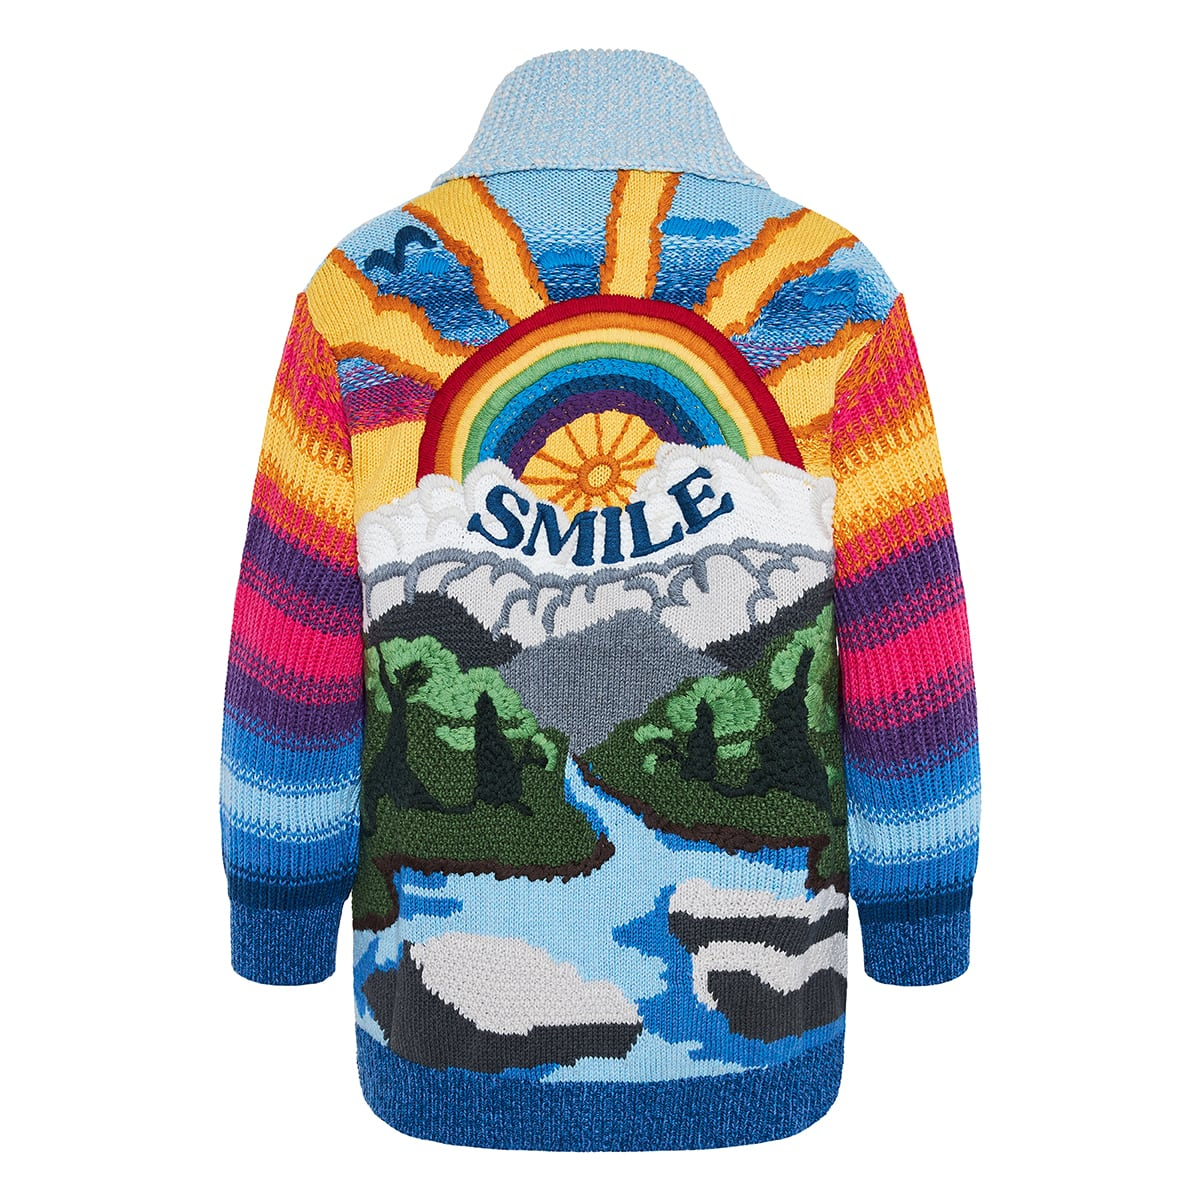 Smile oversized intarsia cardigan